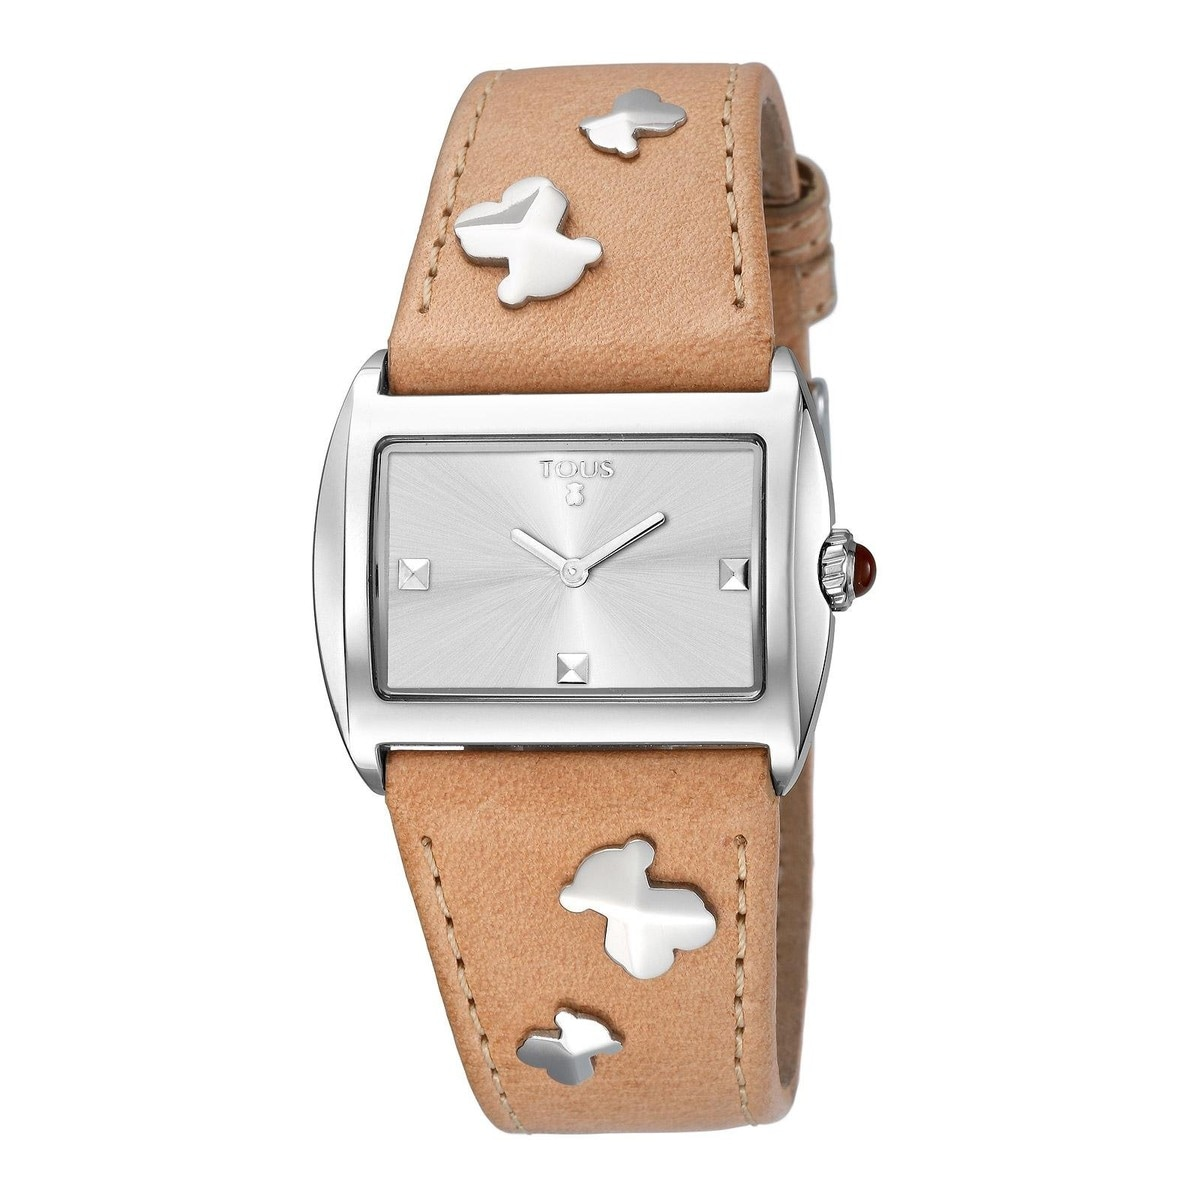 Steel Rocky Watch with camel colored Leather strap